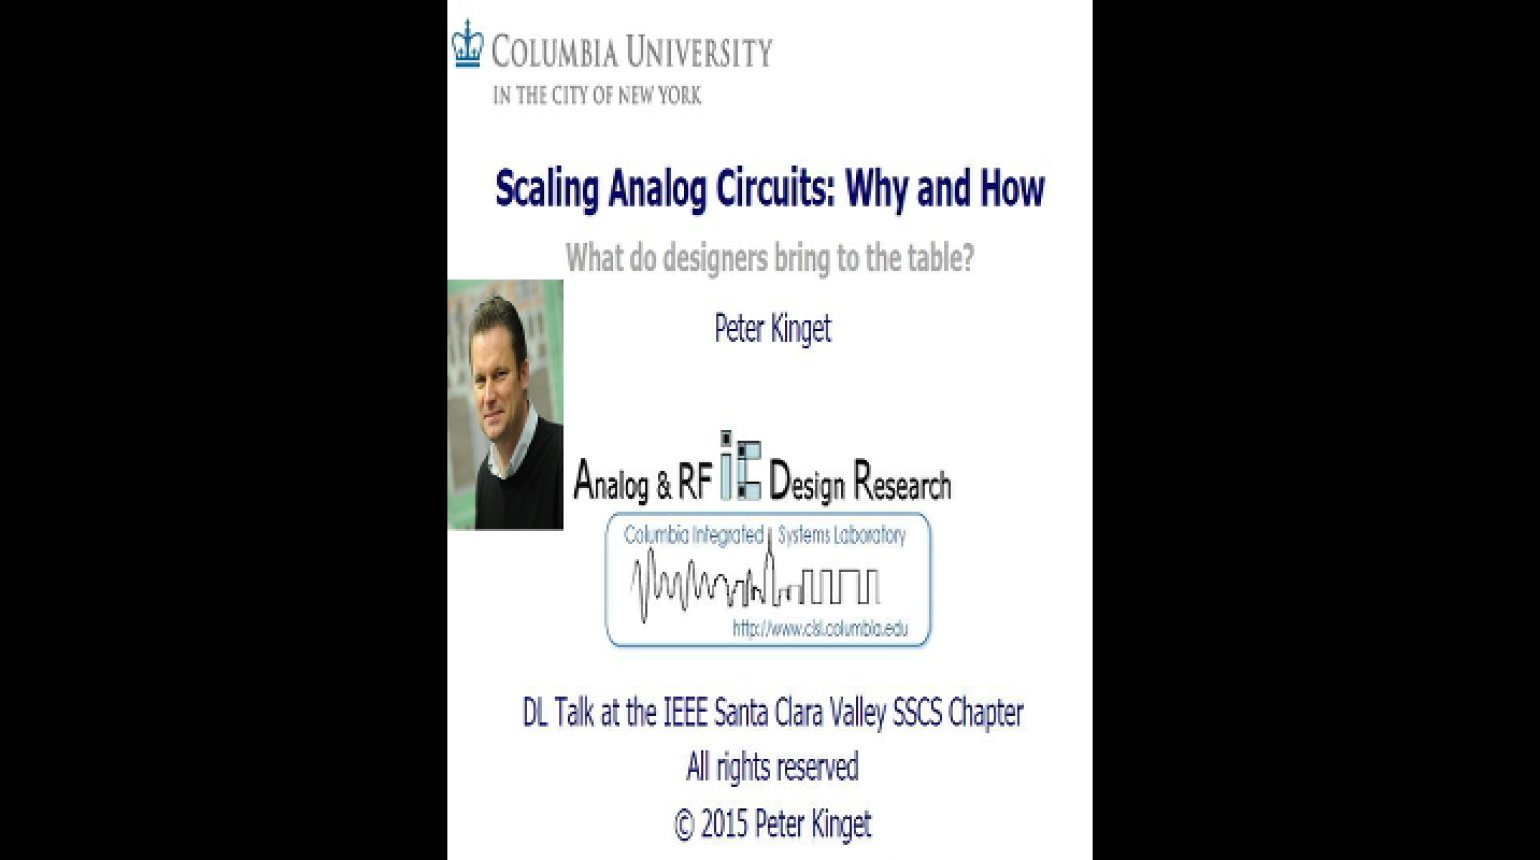 Scaling Analog Circuits: Why and How - What do designers bring to the table? Video